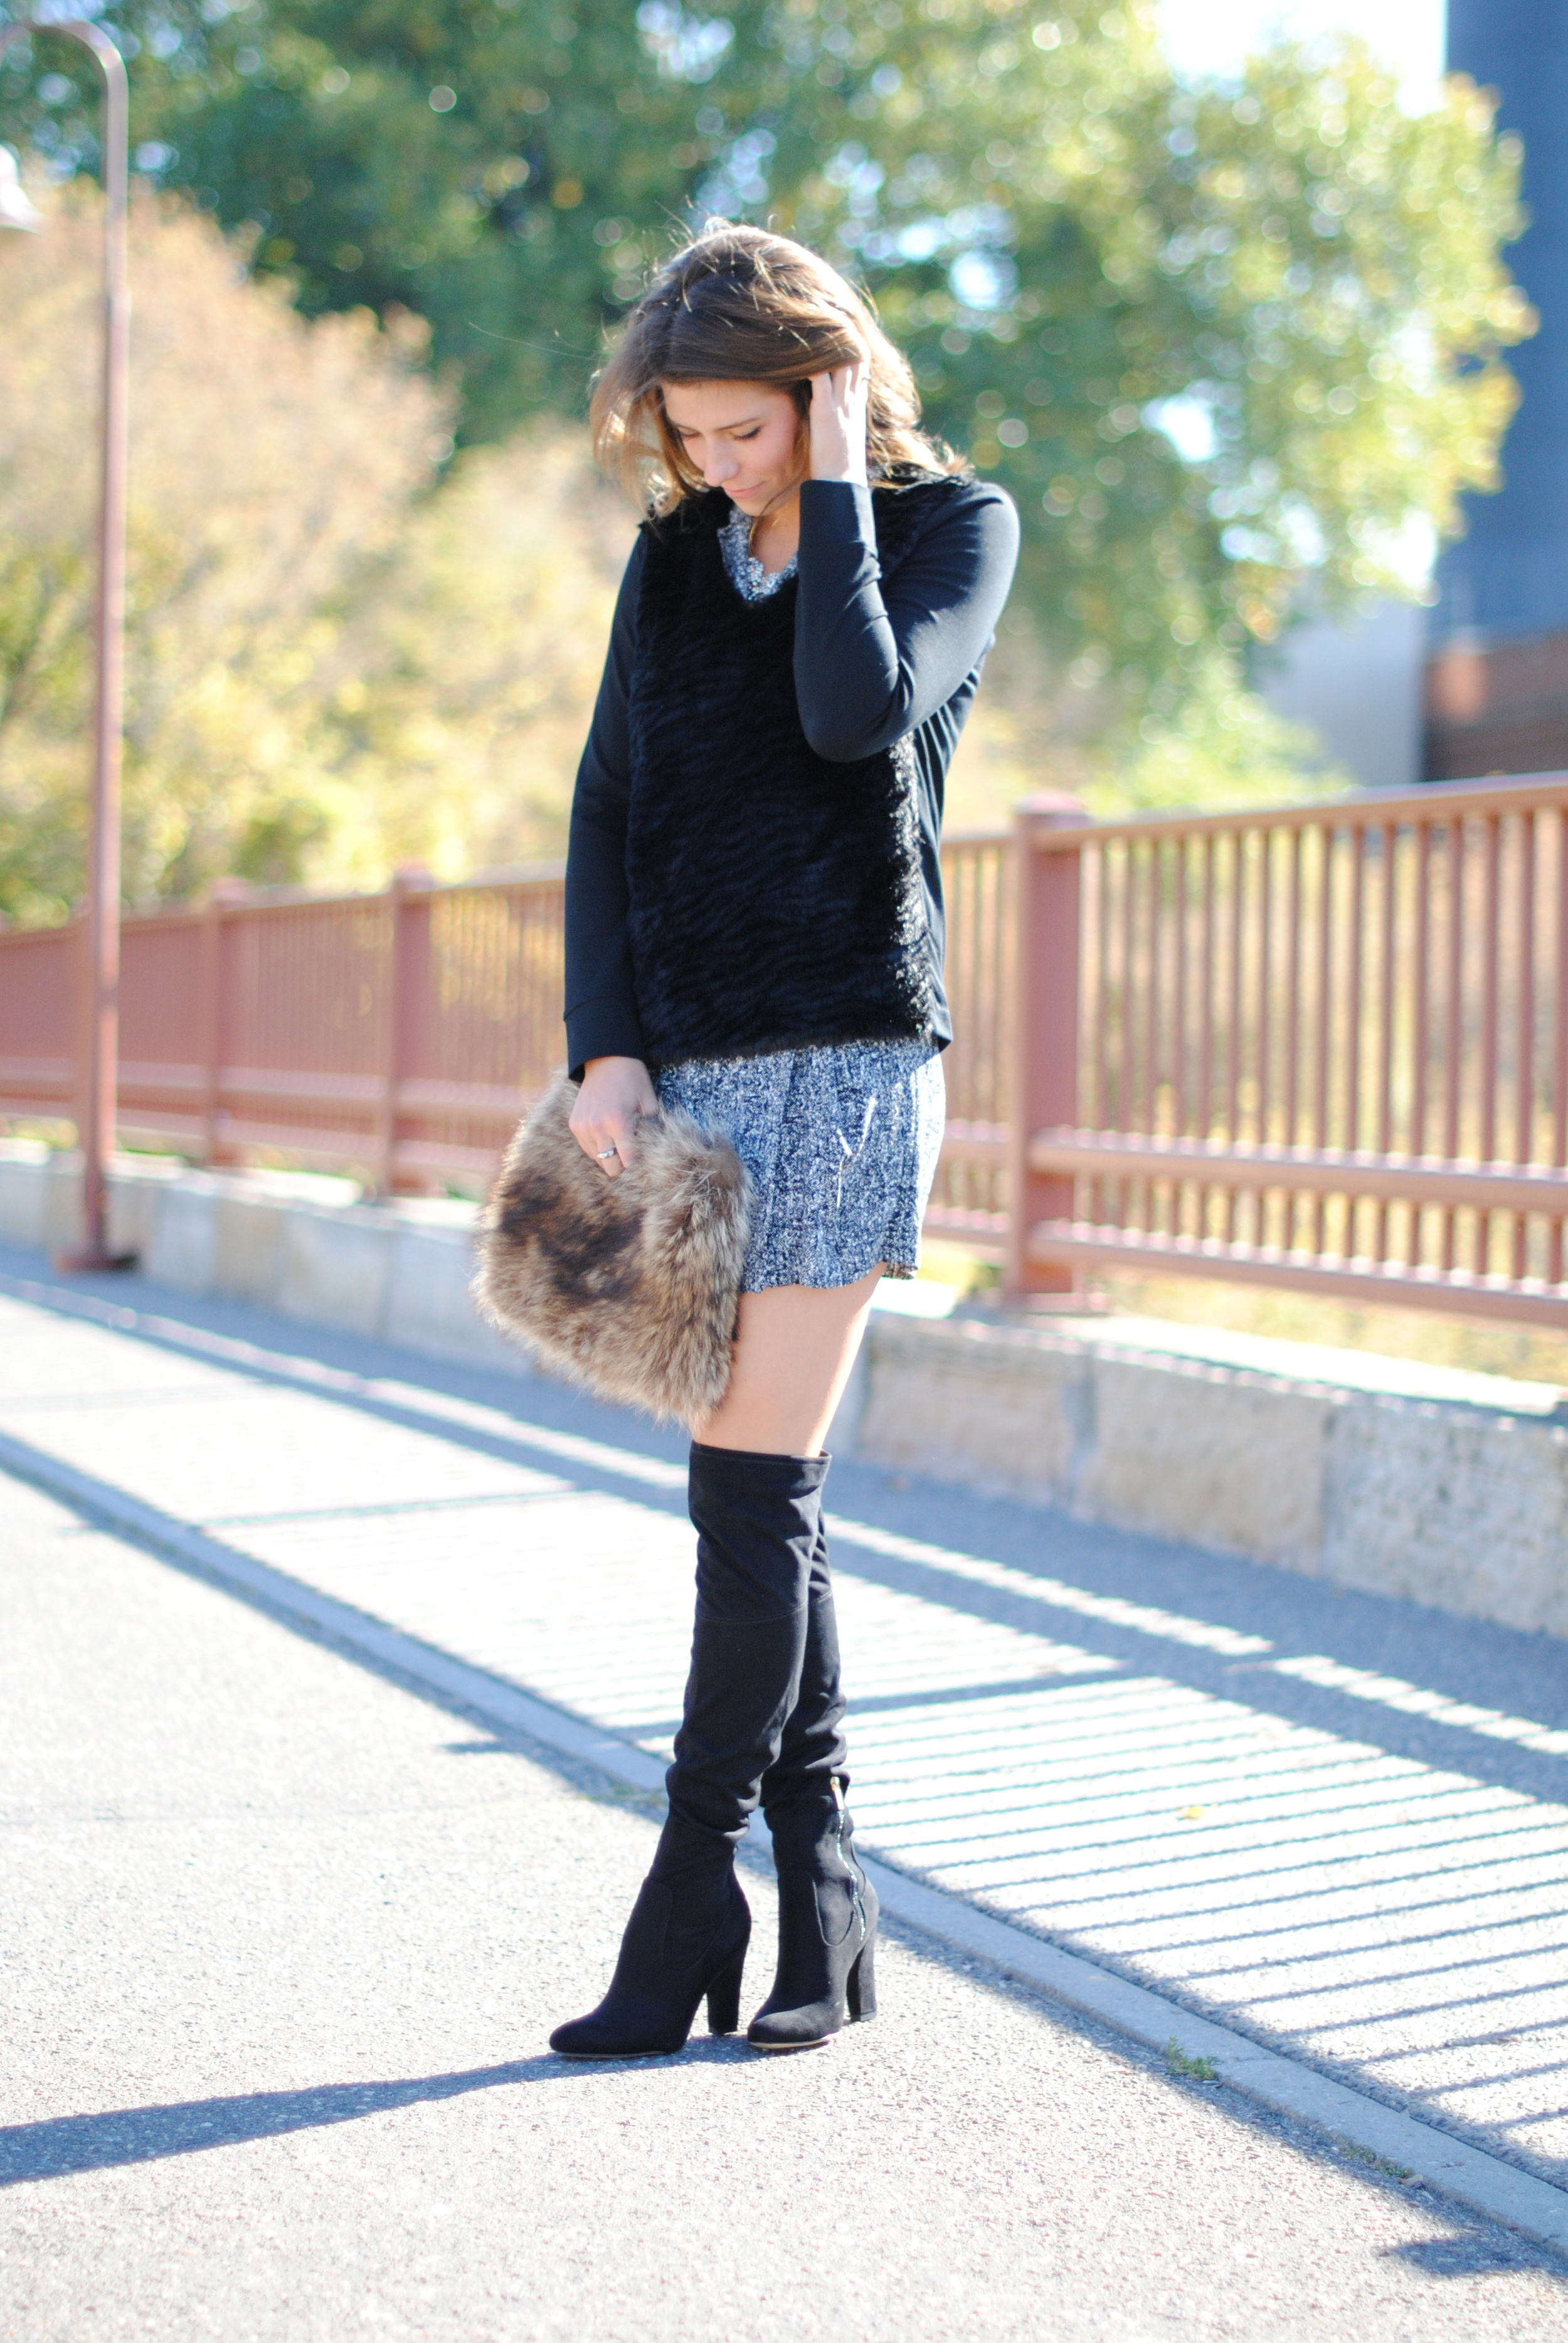 Sandro drop waist dress (sold out), alternative  here  and  here   Club Monaco sweater, alternative  here    Over the knee boots    Vintage fur purse (sold out), almost exact alternative  here